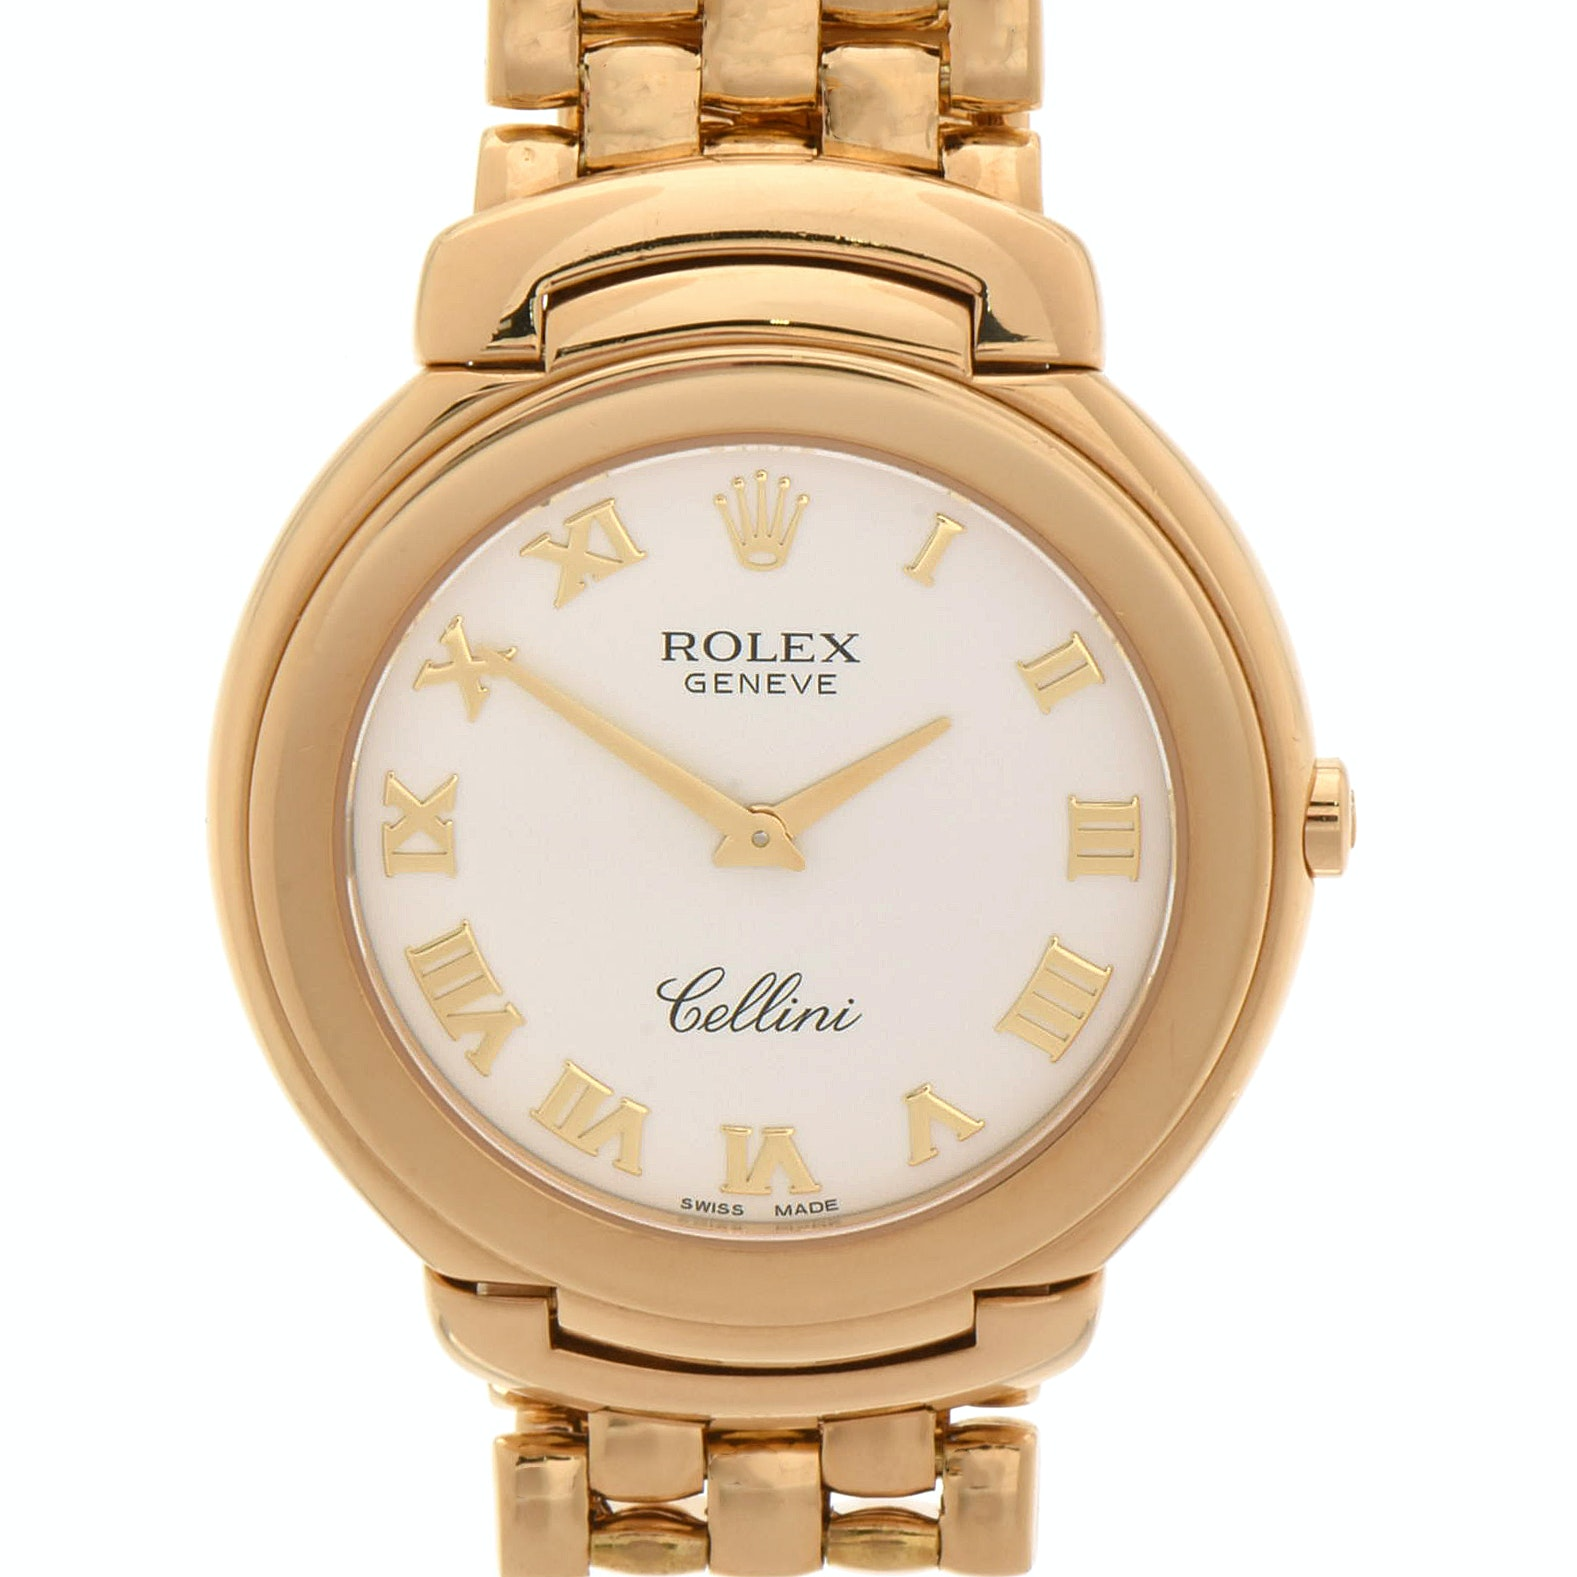 Rolex Cellini 18K Yellow Gold Quartz Wristwatch, Circa 1990s